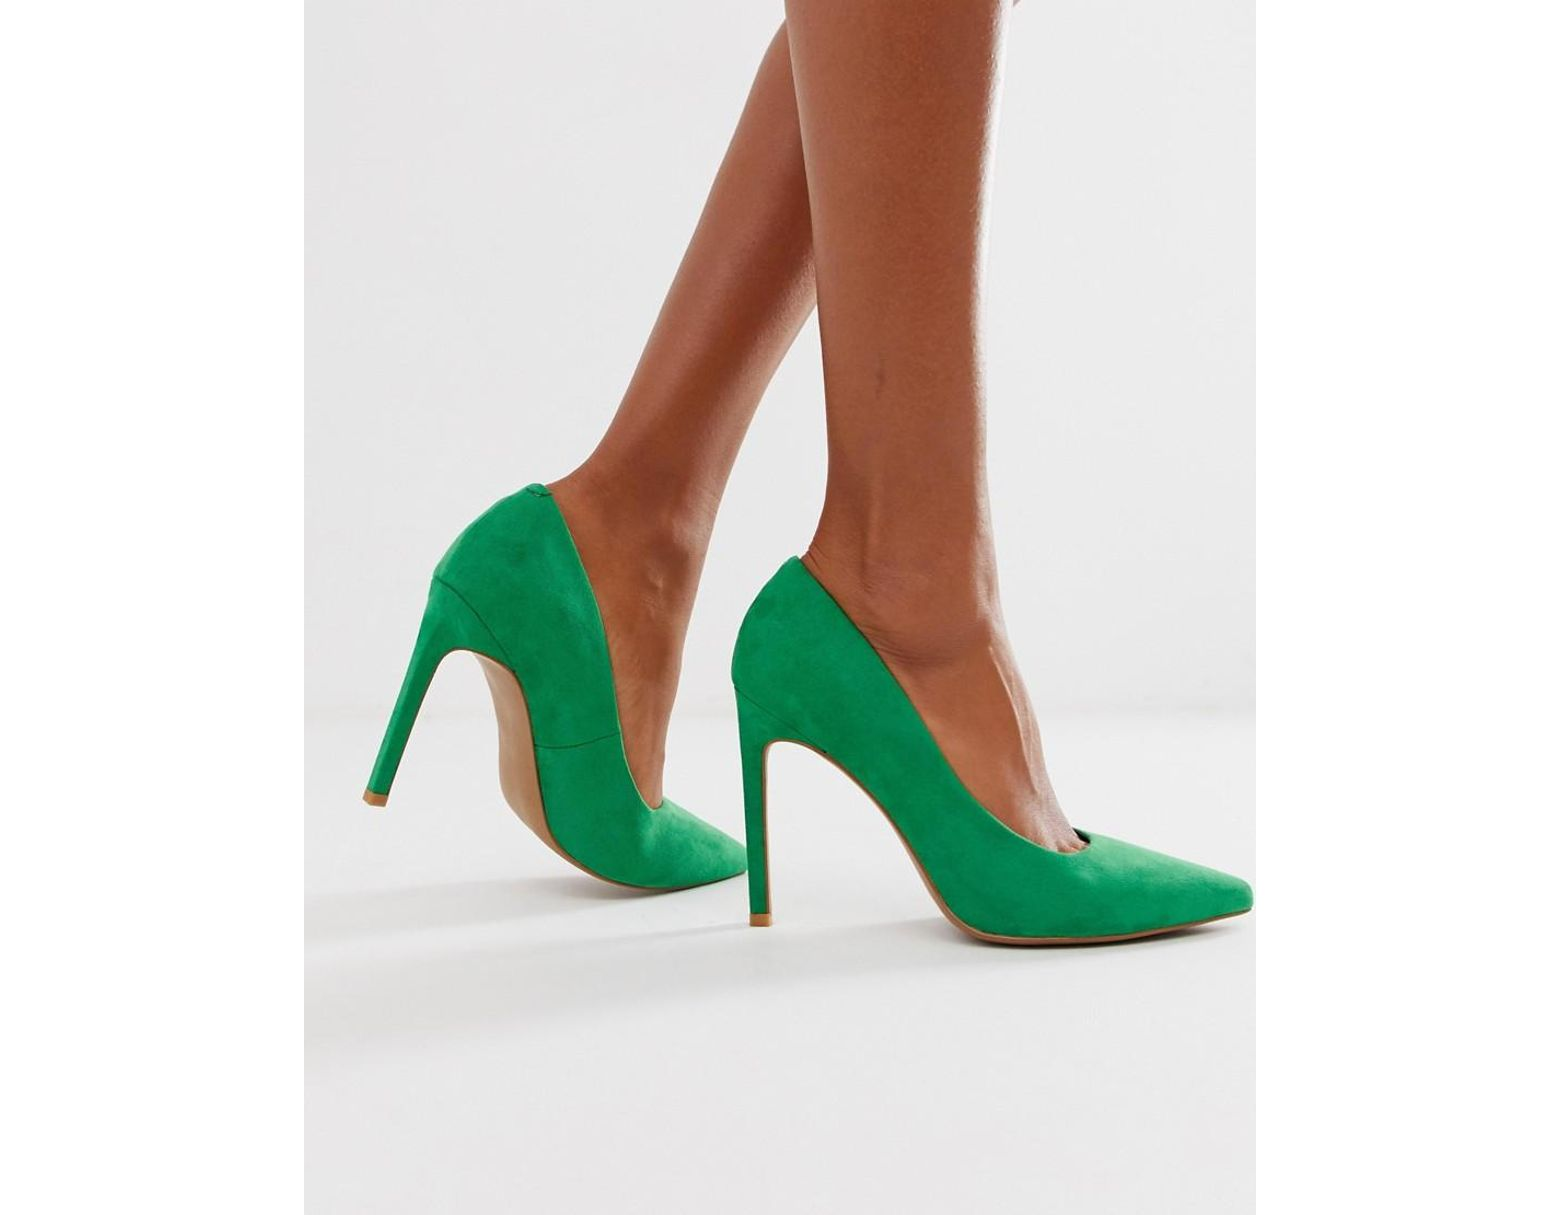 9e00c3ca3c4 ASOS Porto Pointed High Heeled Court Shoes In Emerald Green in Green - Lyst